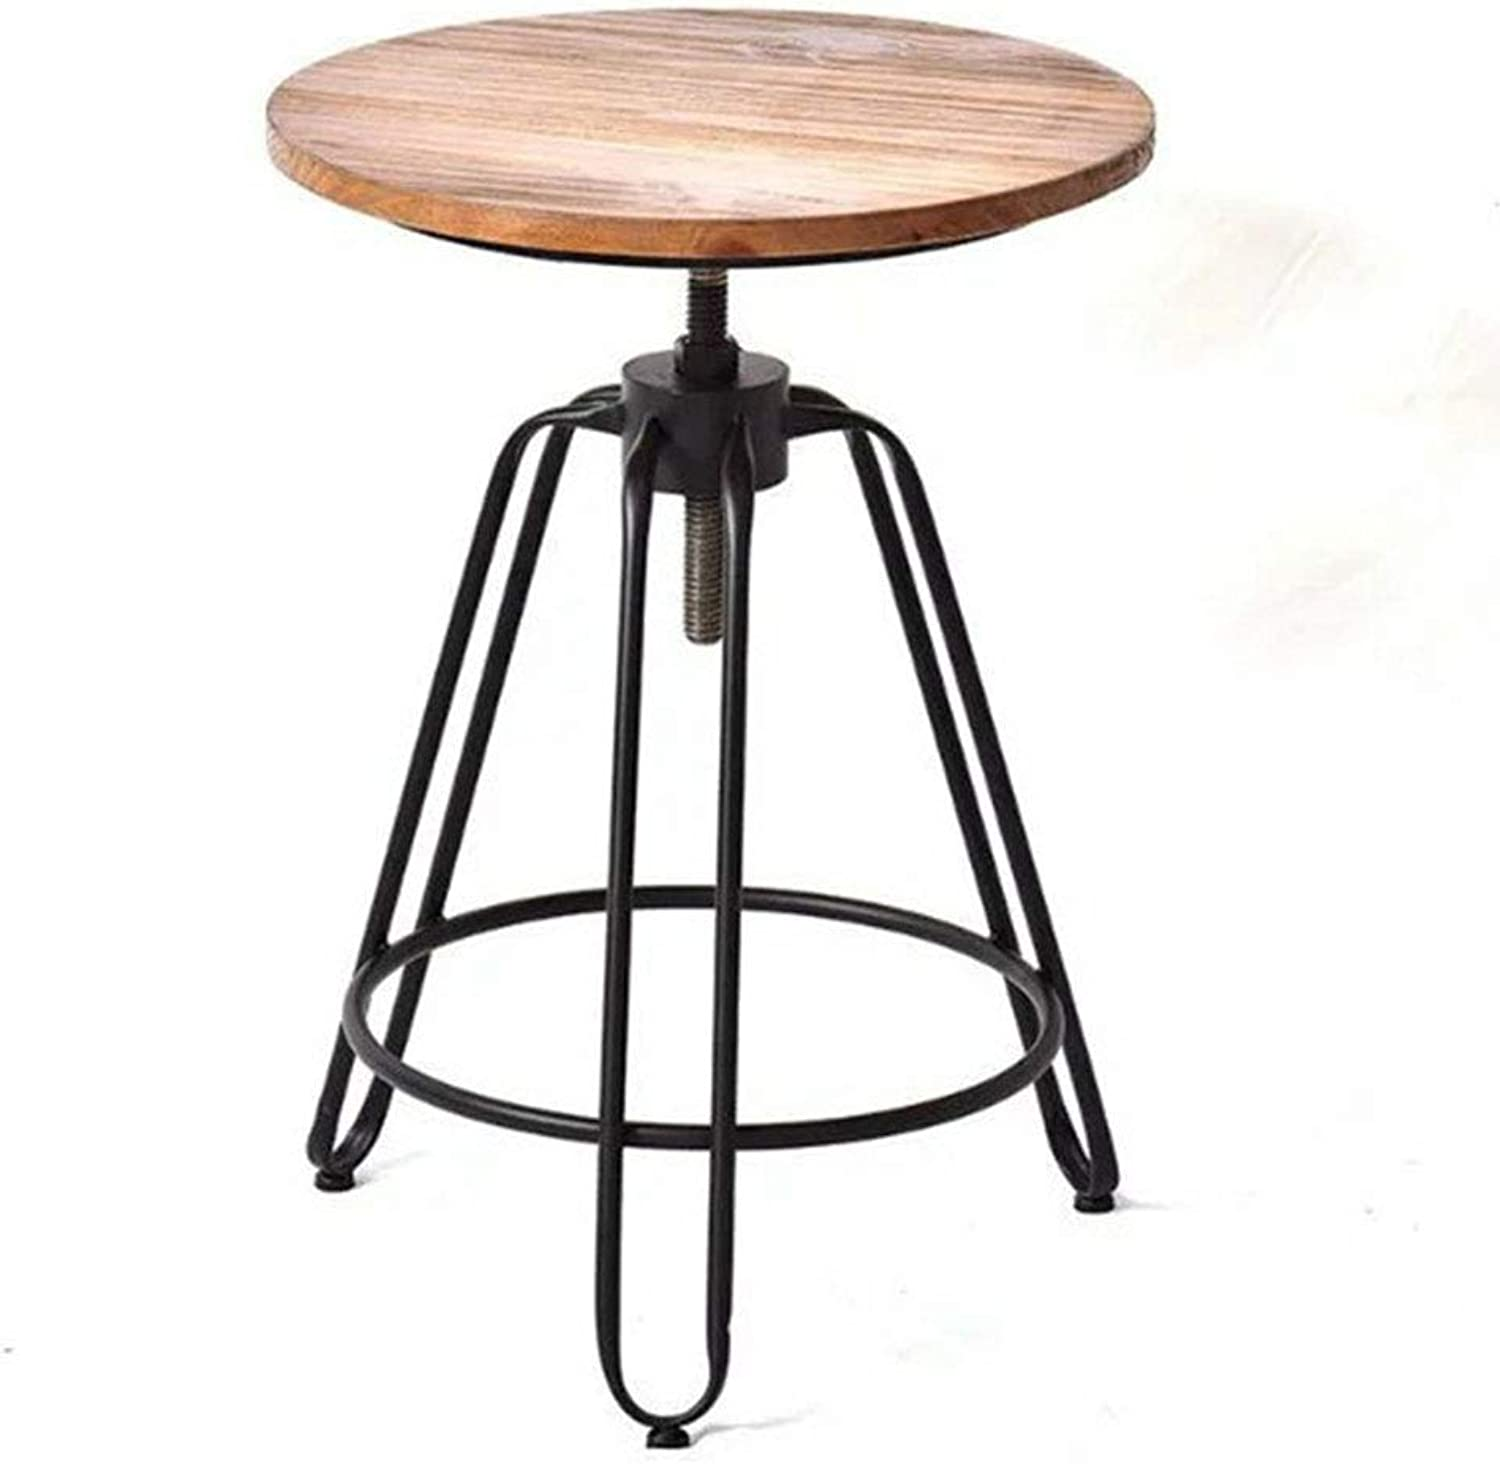 XIAOYAN End Table Vintage Solid Wood Coffee Table Antique Wrought Iron Classical Coffee Table Height Adjustable Small Round Table 2 Sizes Multifunction (Size   45  45  50-75cm)